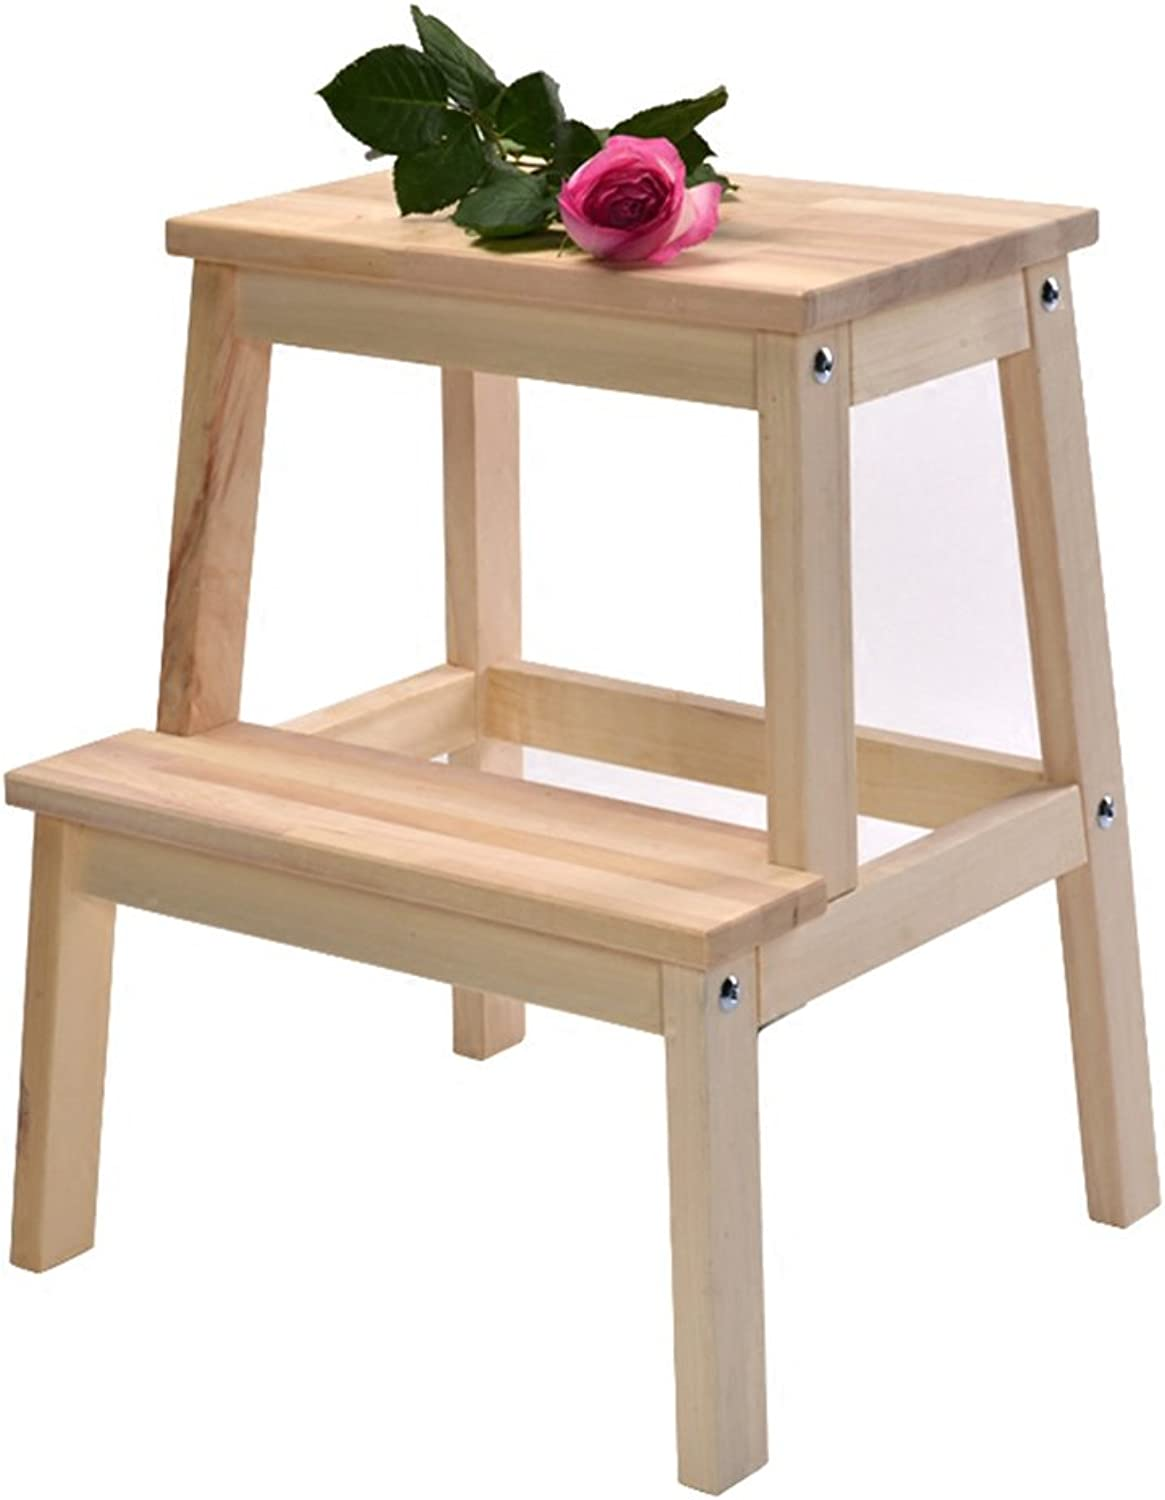 PENGFEI Ladder Step Stool Stairs Multifunction Solid Wood 2 Steps Home Kitchen Change shoes Step On Foot High and Low 43x39x50CM Furniture (color   Wood color)